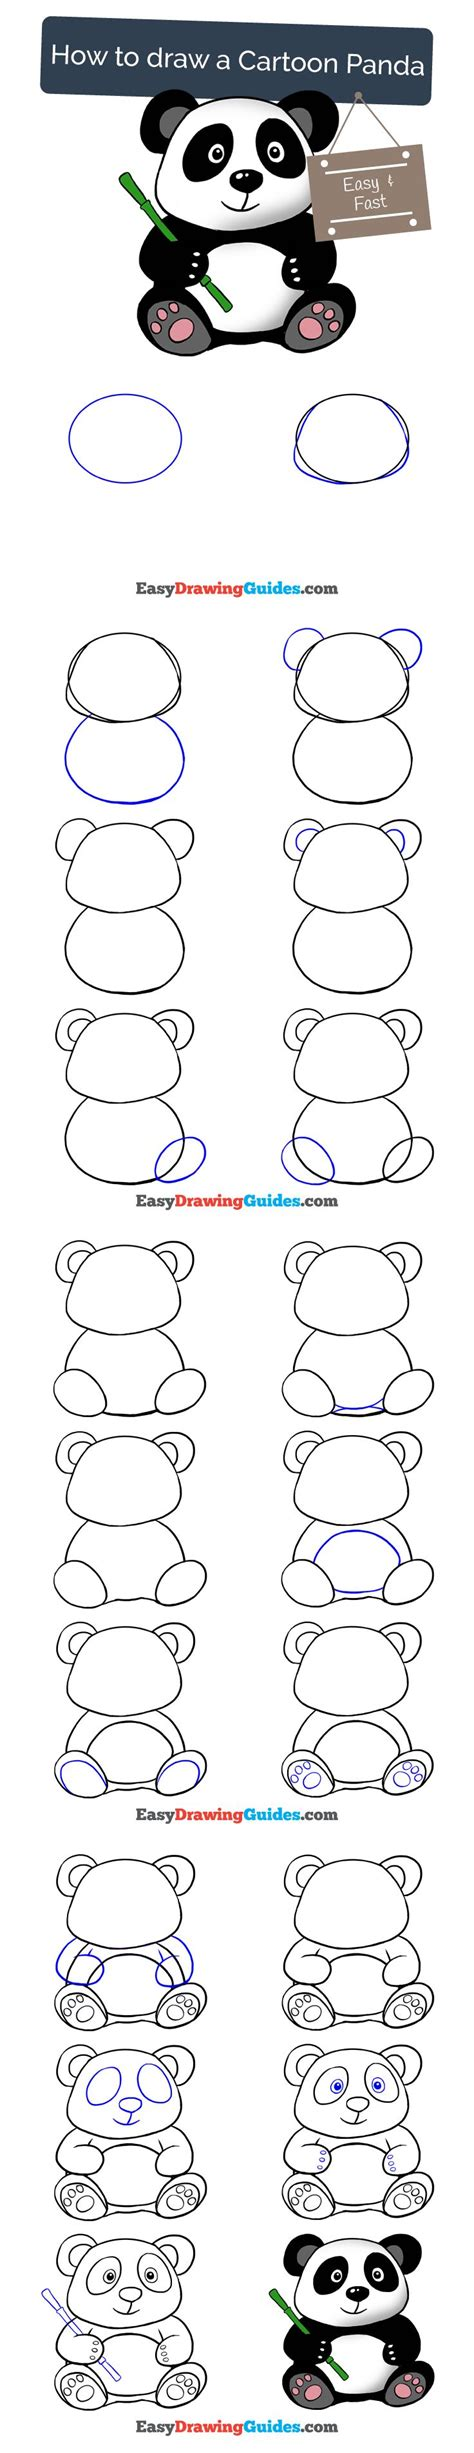 typography tutorial step by step draw pattern learn how to draw a cartoon panda easy